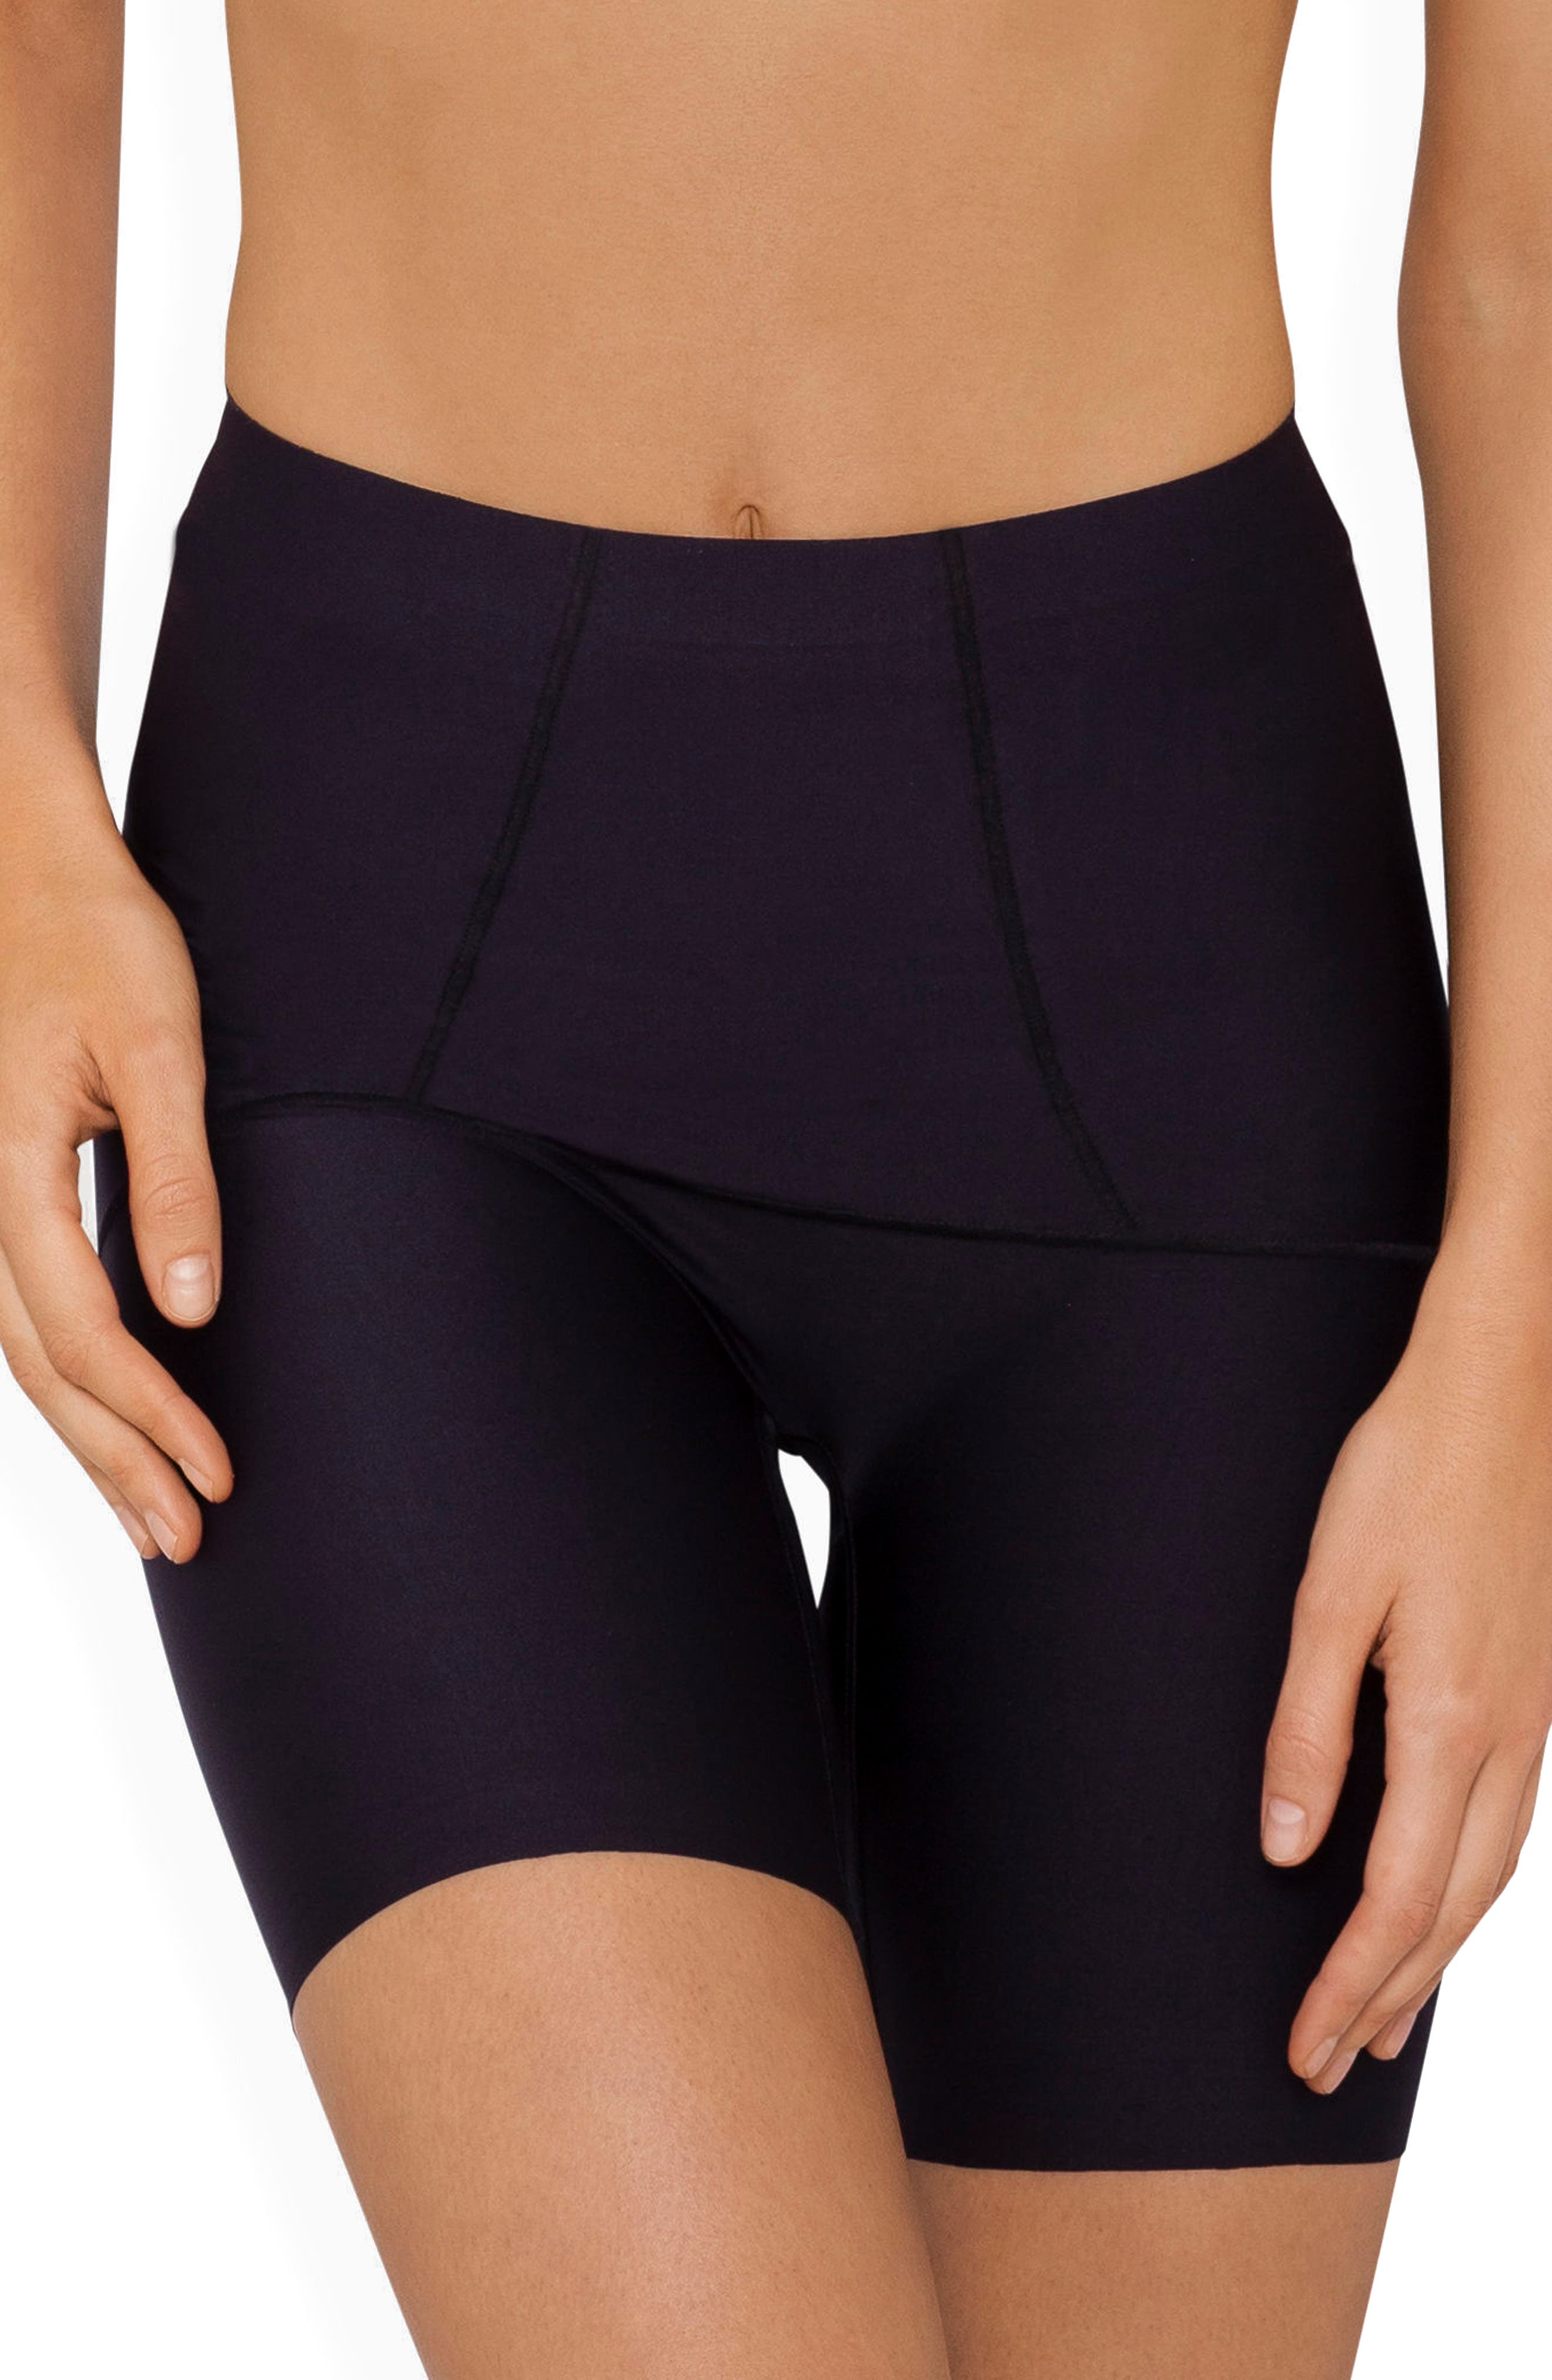 Body Architect High Waist Shaper Shorts,                         Main,                         color, BLACK